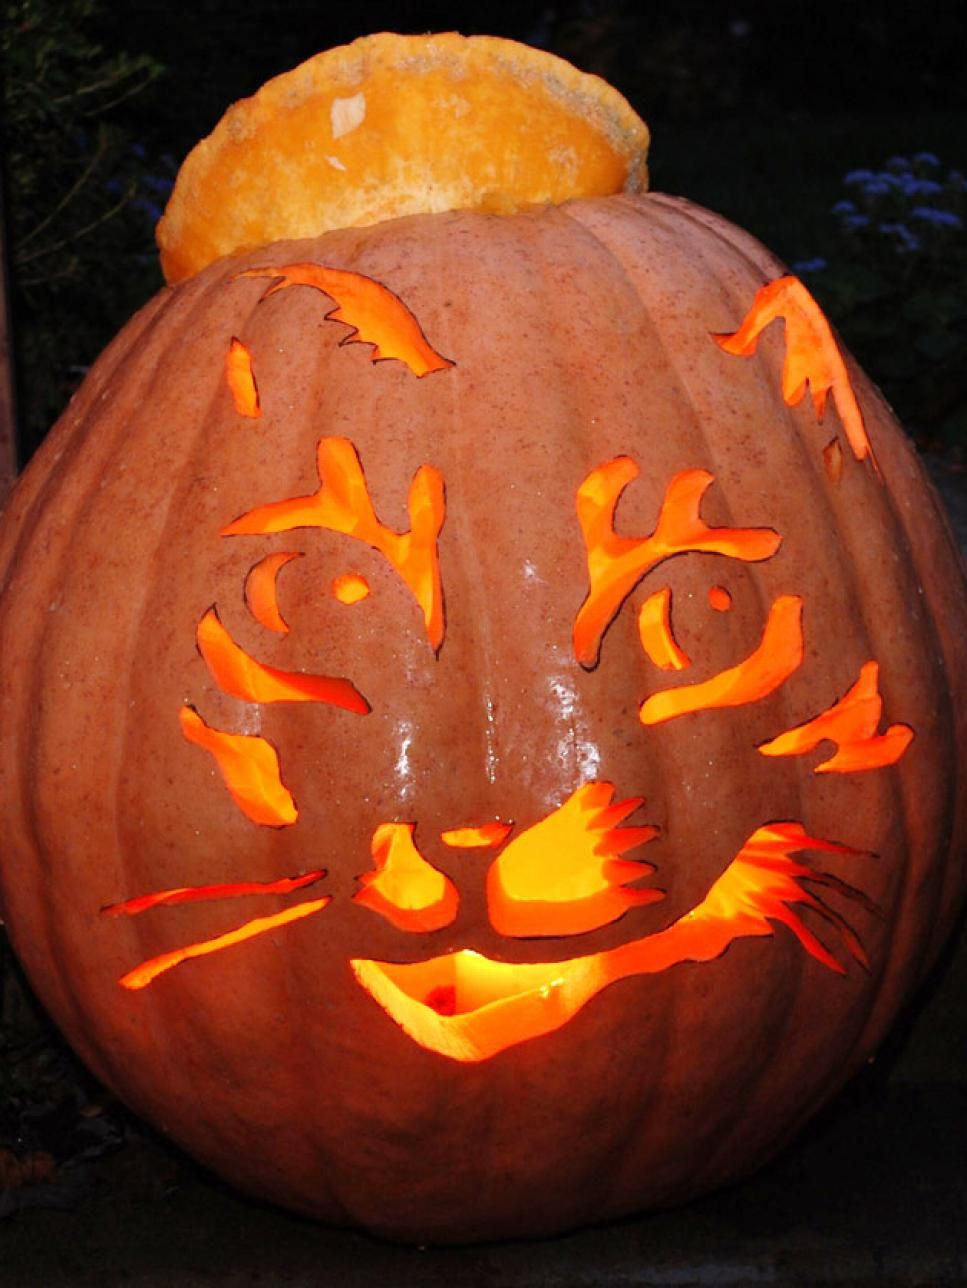 22 Traditional Pumpkin Carving Ideas | Pumpkin carvings and ...